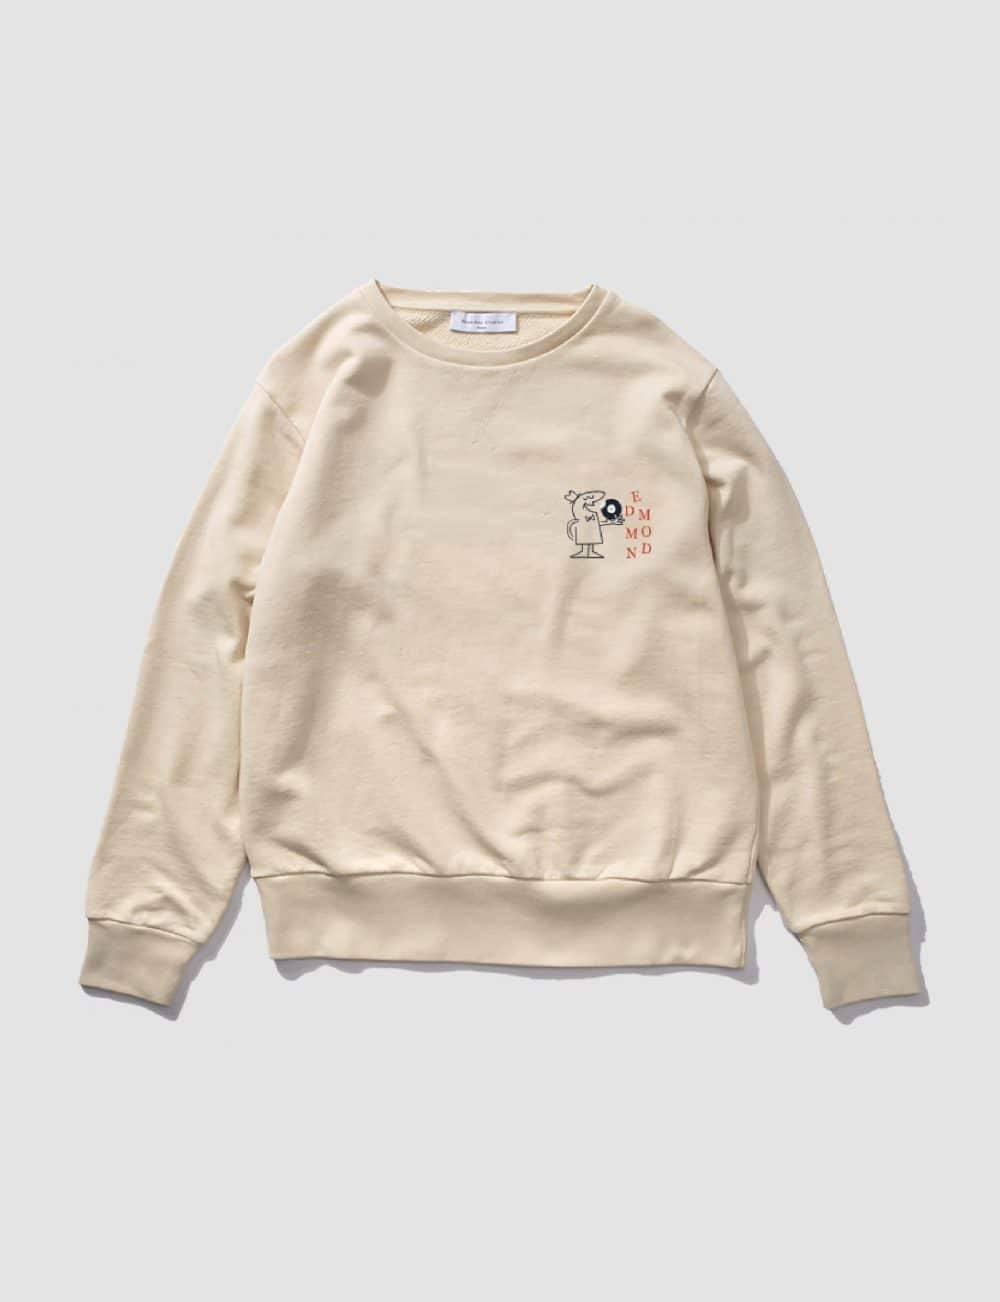 Castart - Edmmond Parties Sweater - Beige